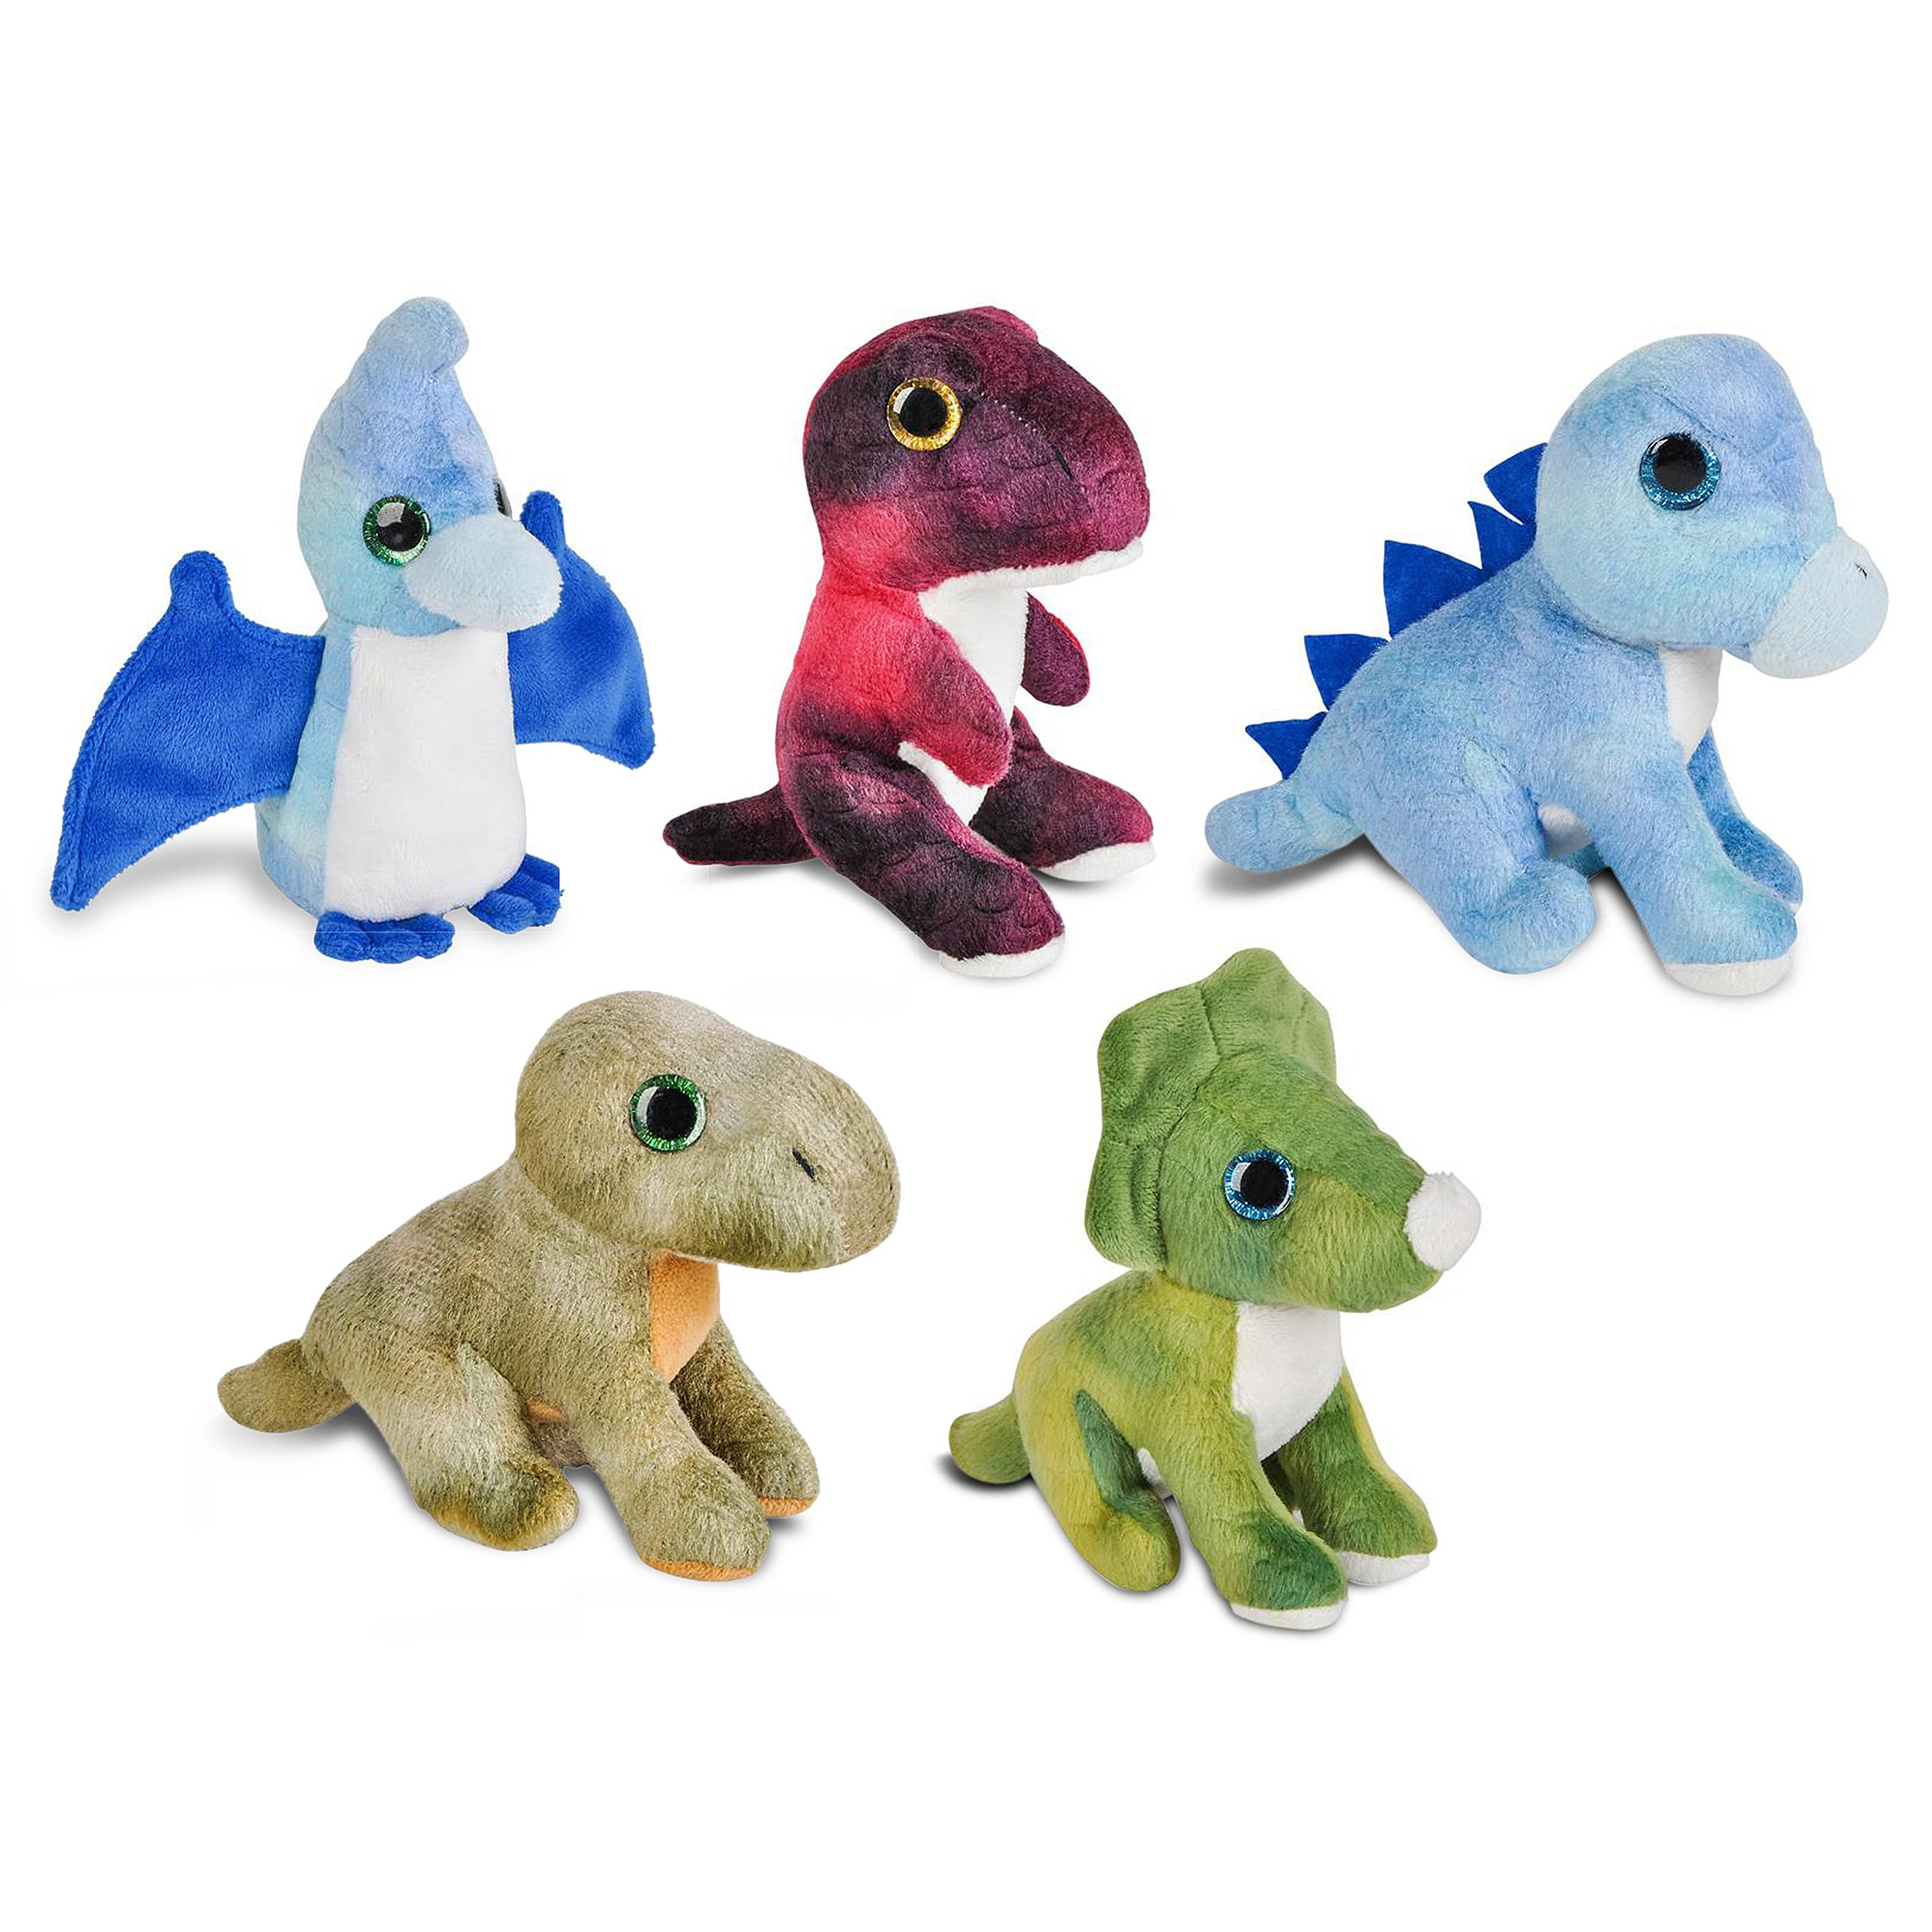 Wildlife Tree Mini Small Stuffed Animals Bundle of Dinosaur Animal Toys or Prehistoric Dino Party Favors for Kids (Pack of 5)